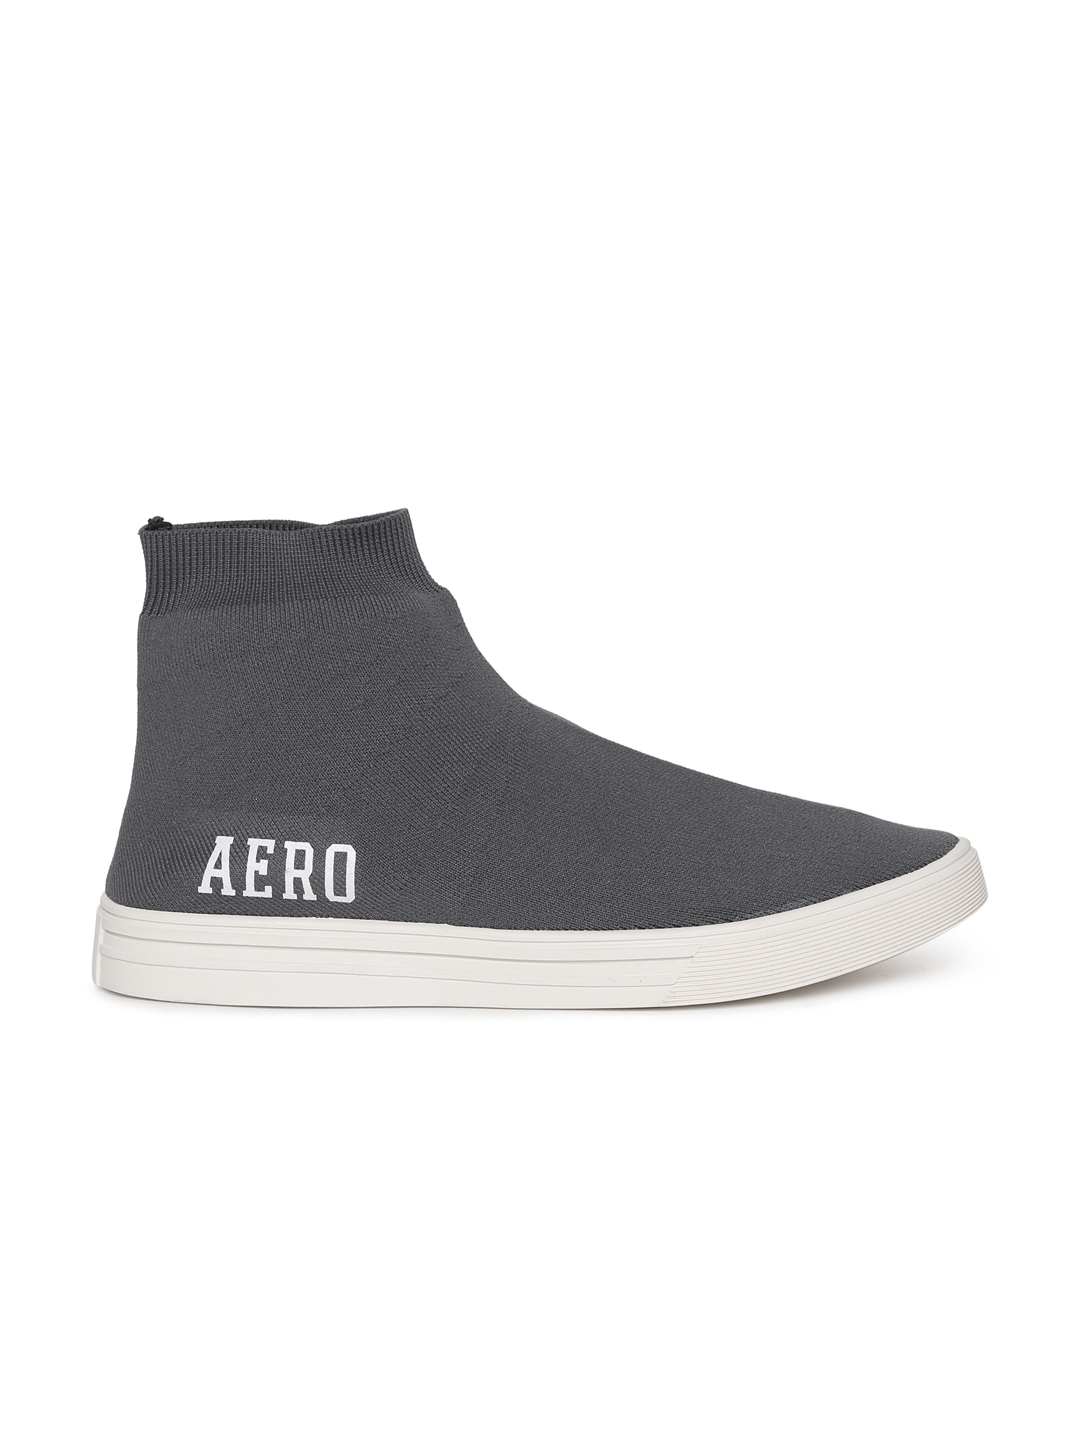 7e0508b2a3d Aeropostale Men Grey Solid Suede Mid-Top Slip-On CUMMINS Sneakers